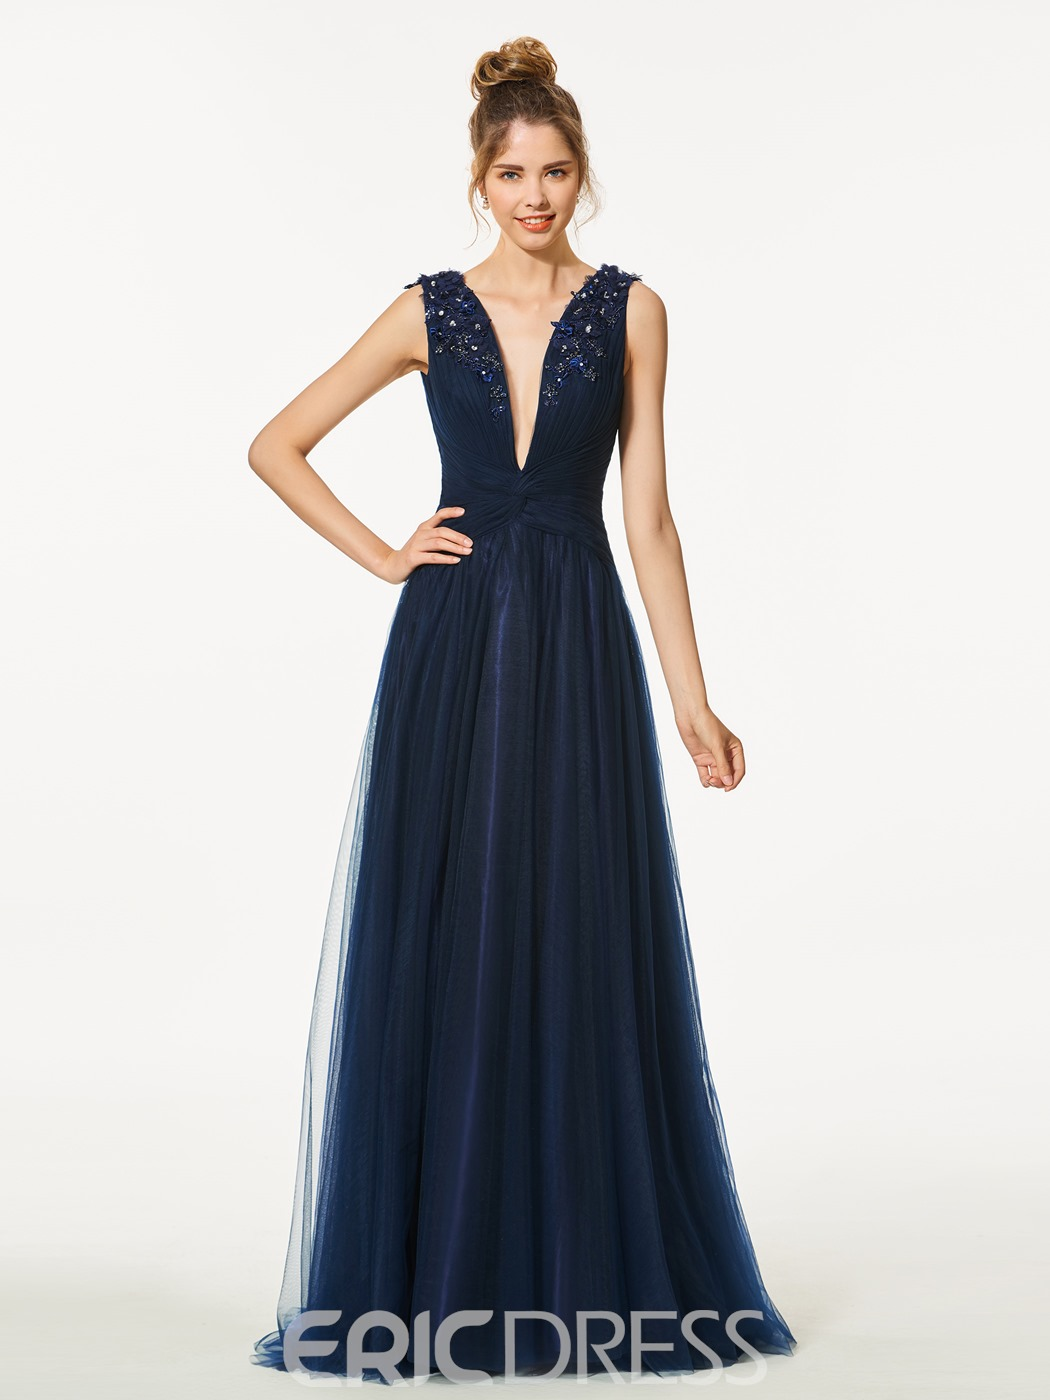 Ericdress A-Line V Neck Appliques Beading Backless Prom Dress